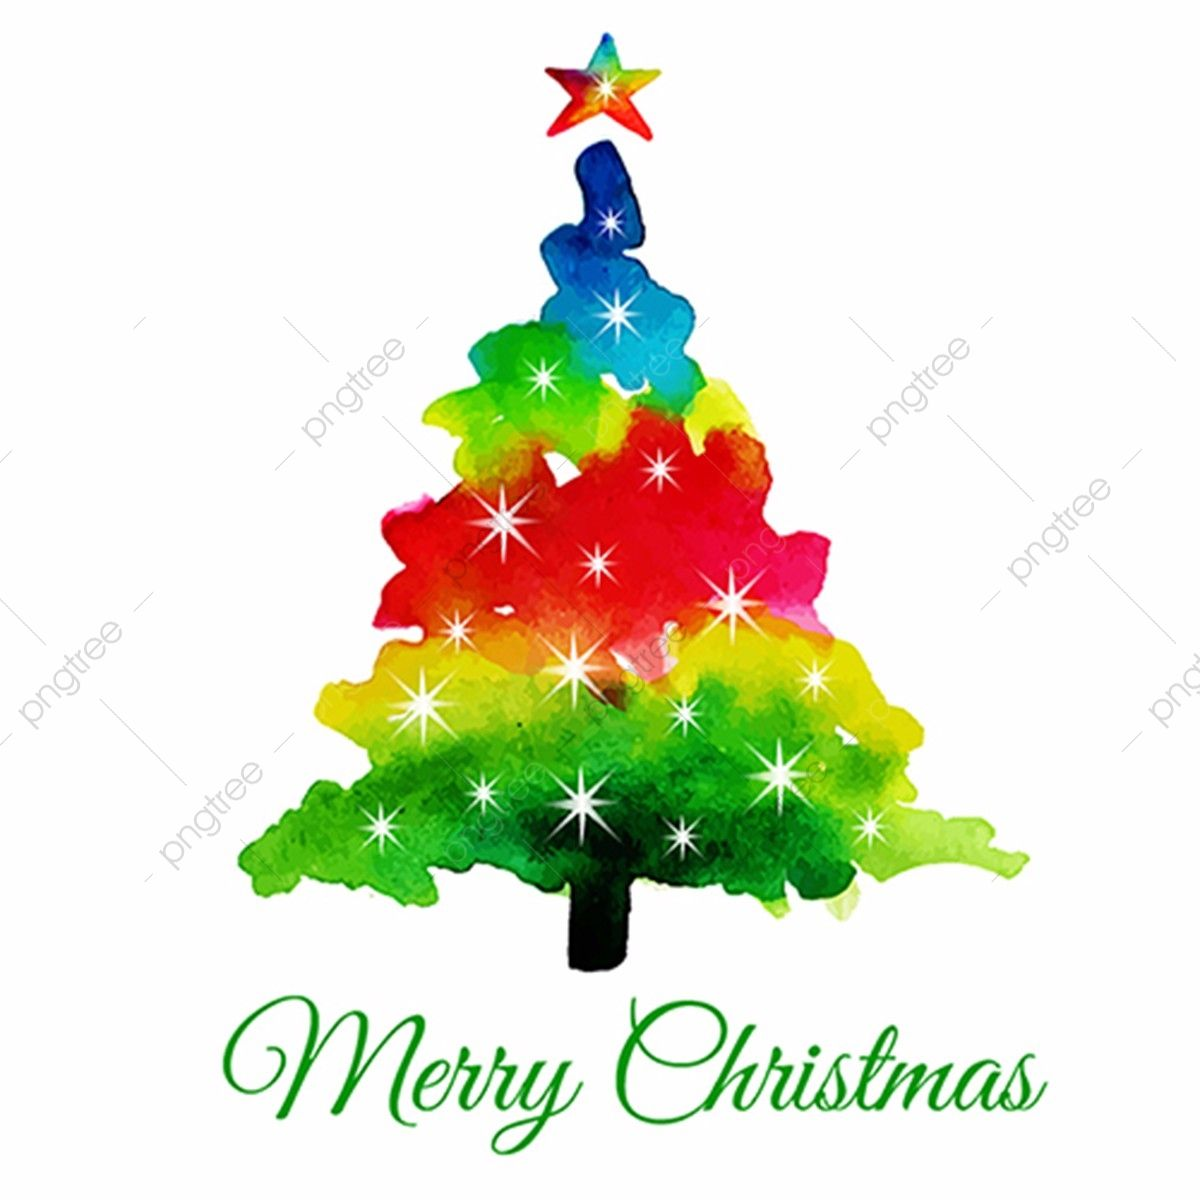 Watercolor Abstract Christmas Tree Watercolor Color Colors Png And Vector With Transparent Background For Free Download Watercolor Christmas Tree Watercolor Christmas Cards Christmas Tree Painting